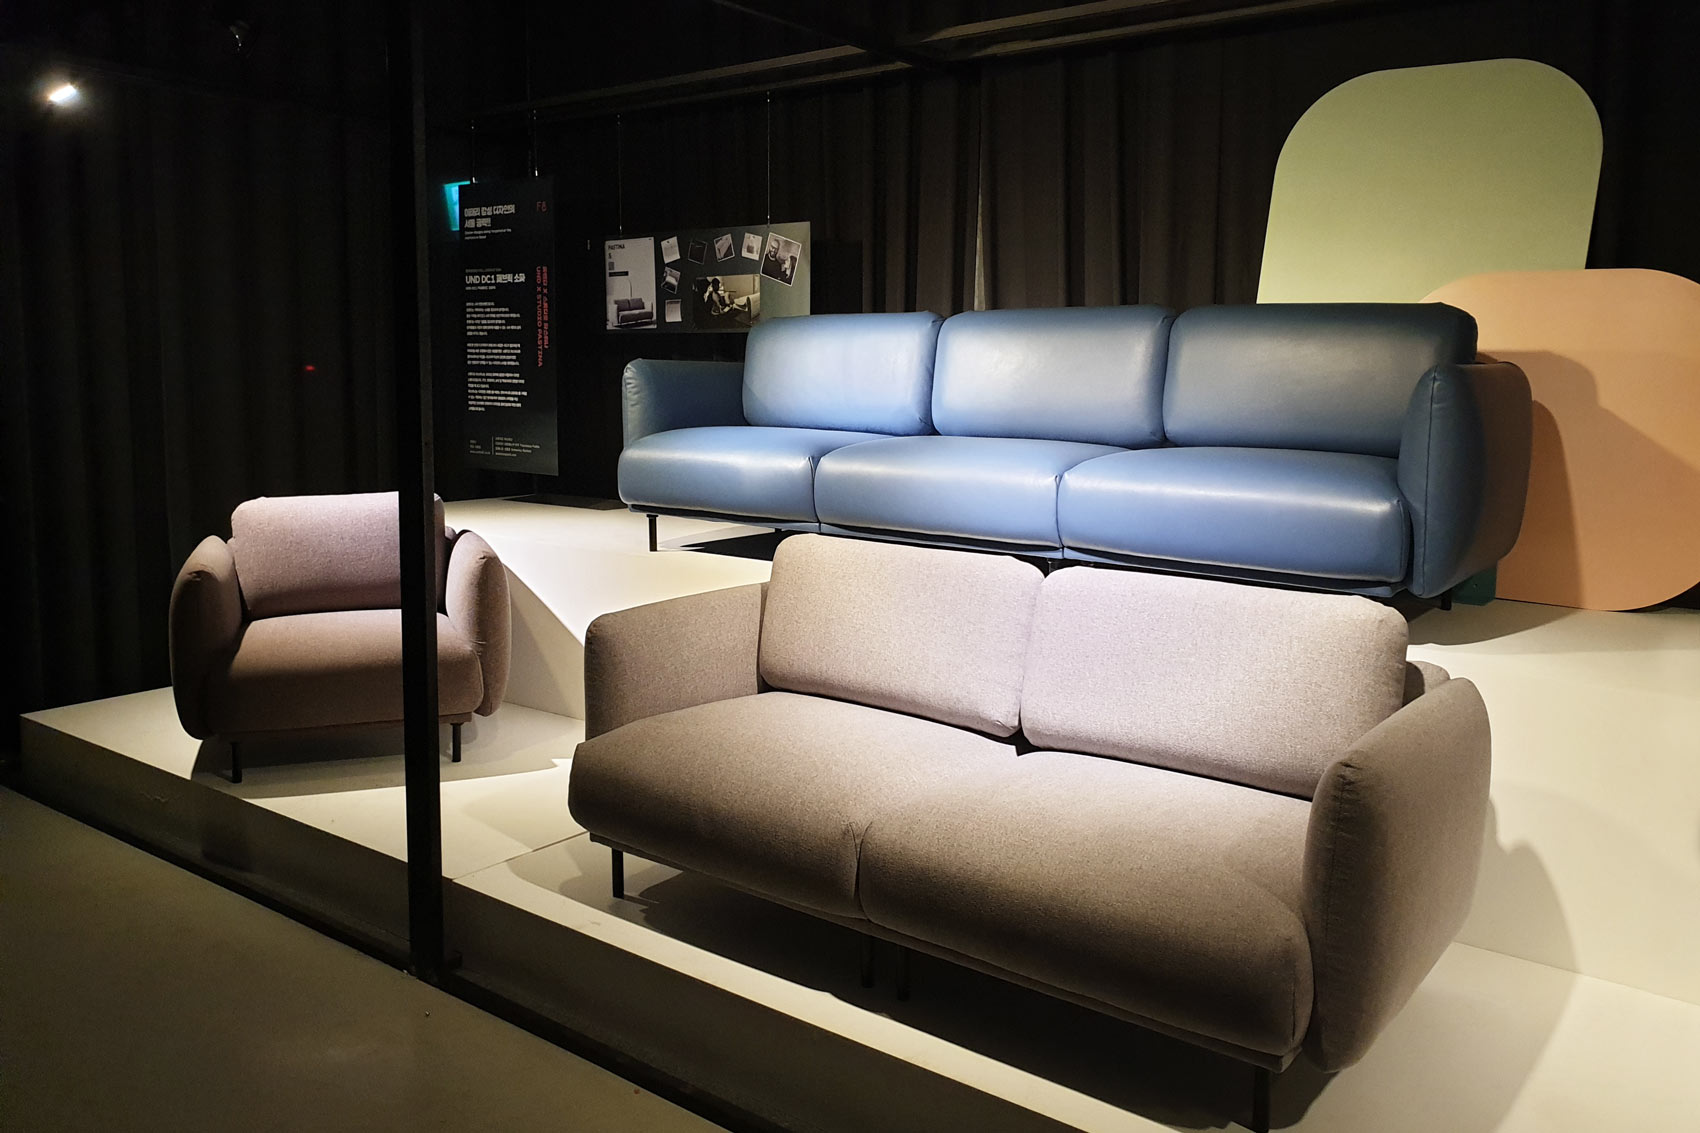 Studio Pastina x UND <br>at DDP Design Fair 2019